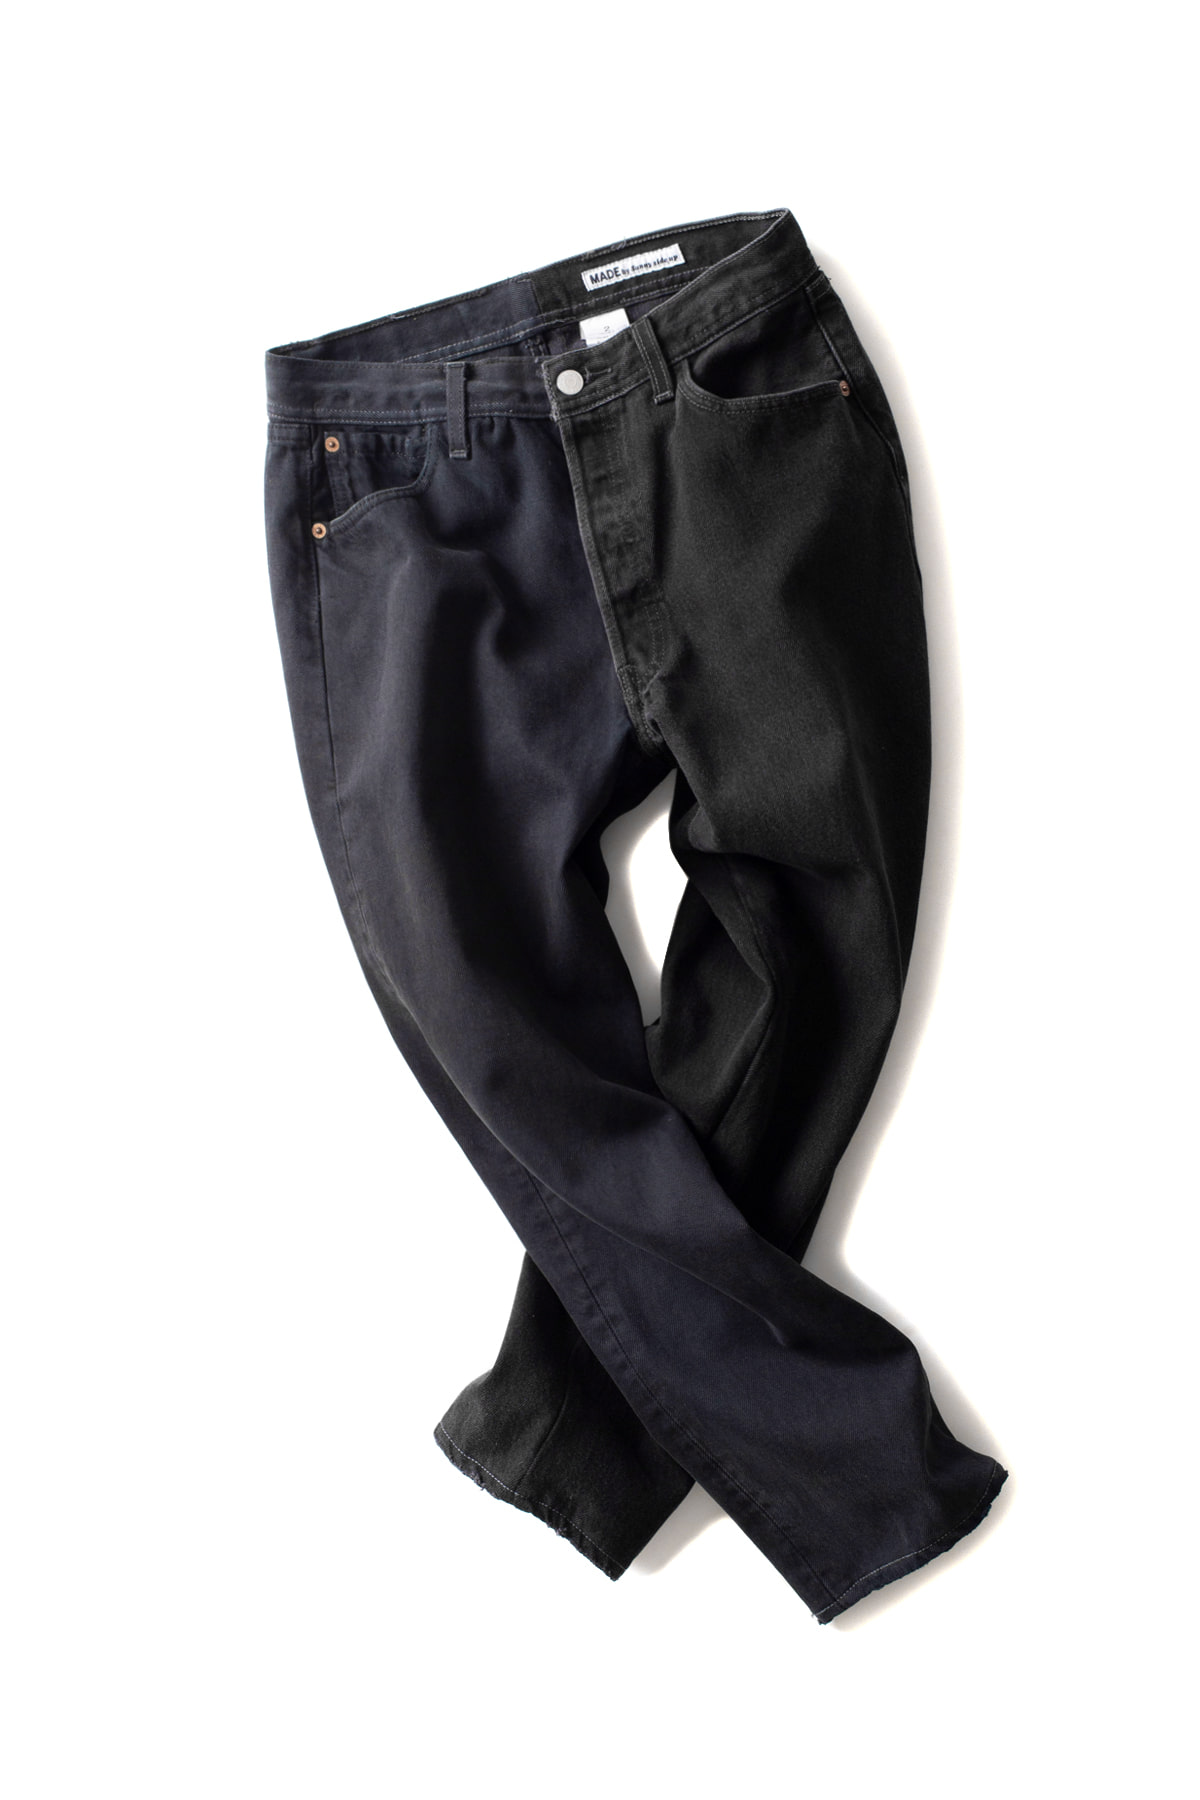 MADE by Sunny Side up : 2Forl Denim 5P Pants 2Size Black (A)